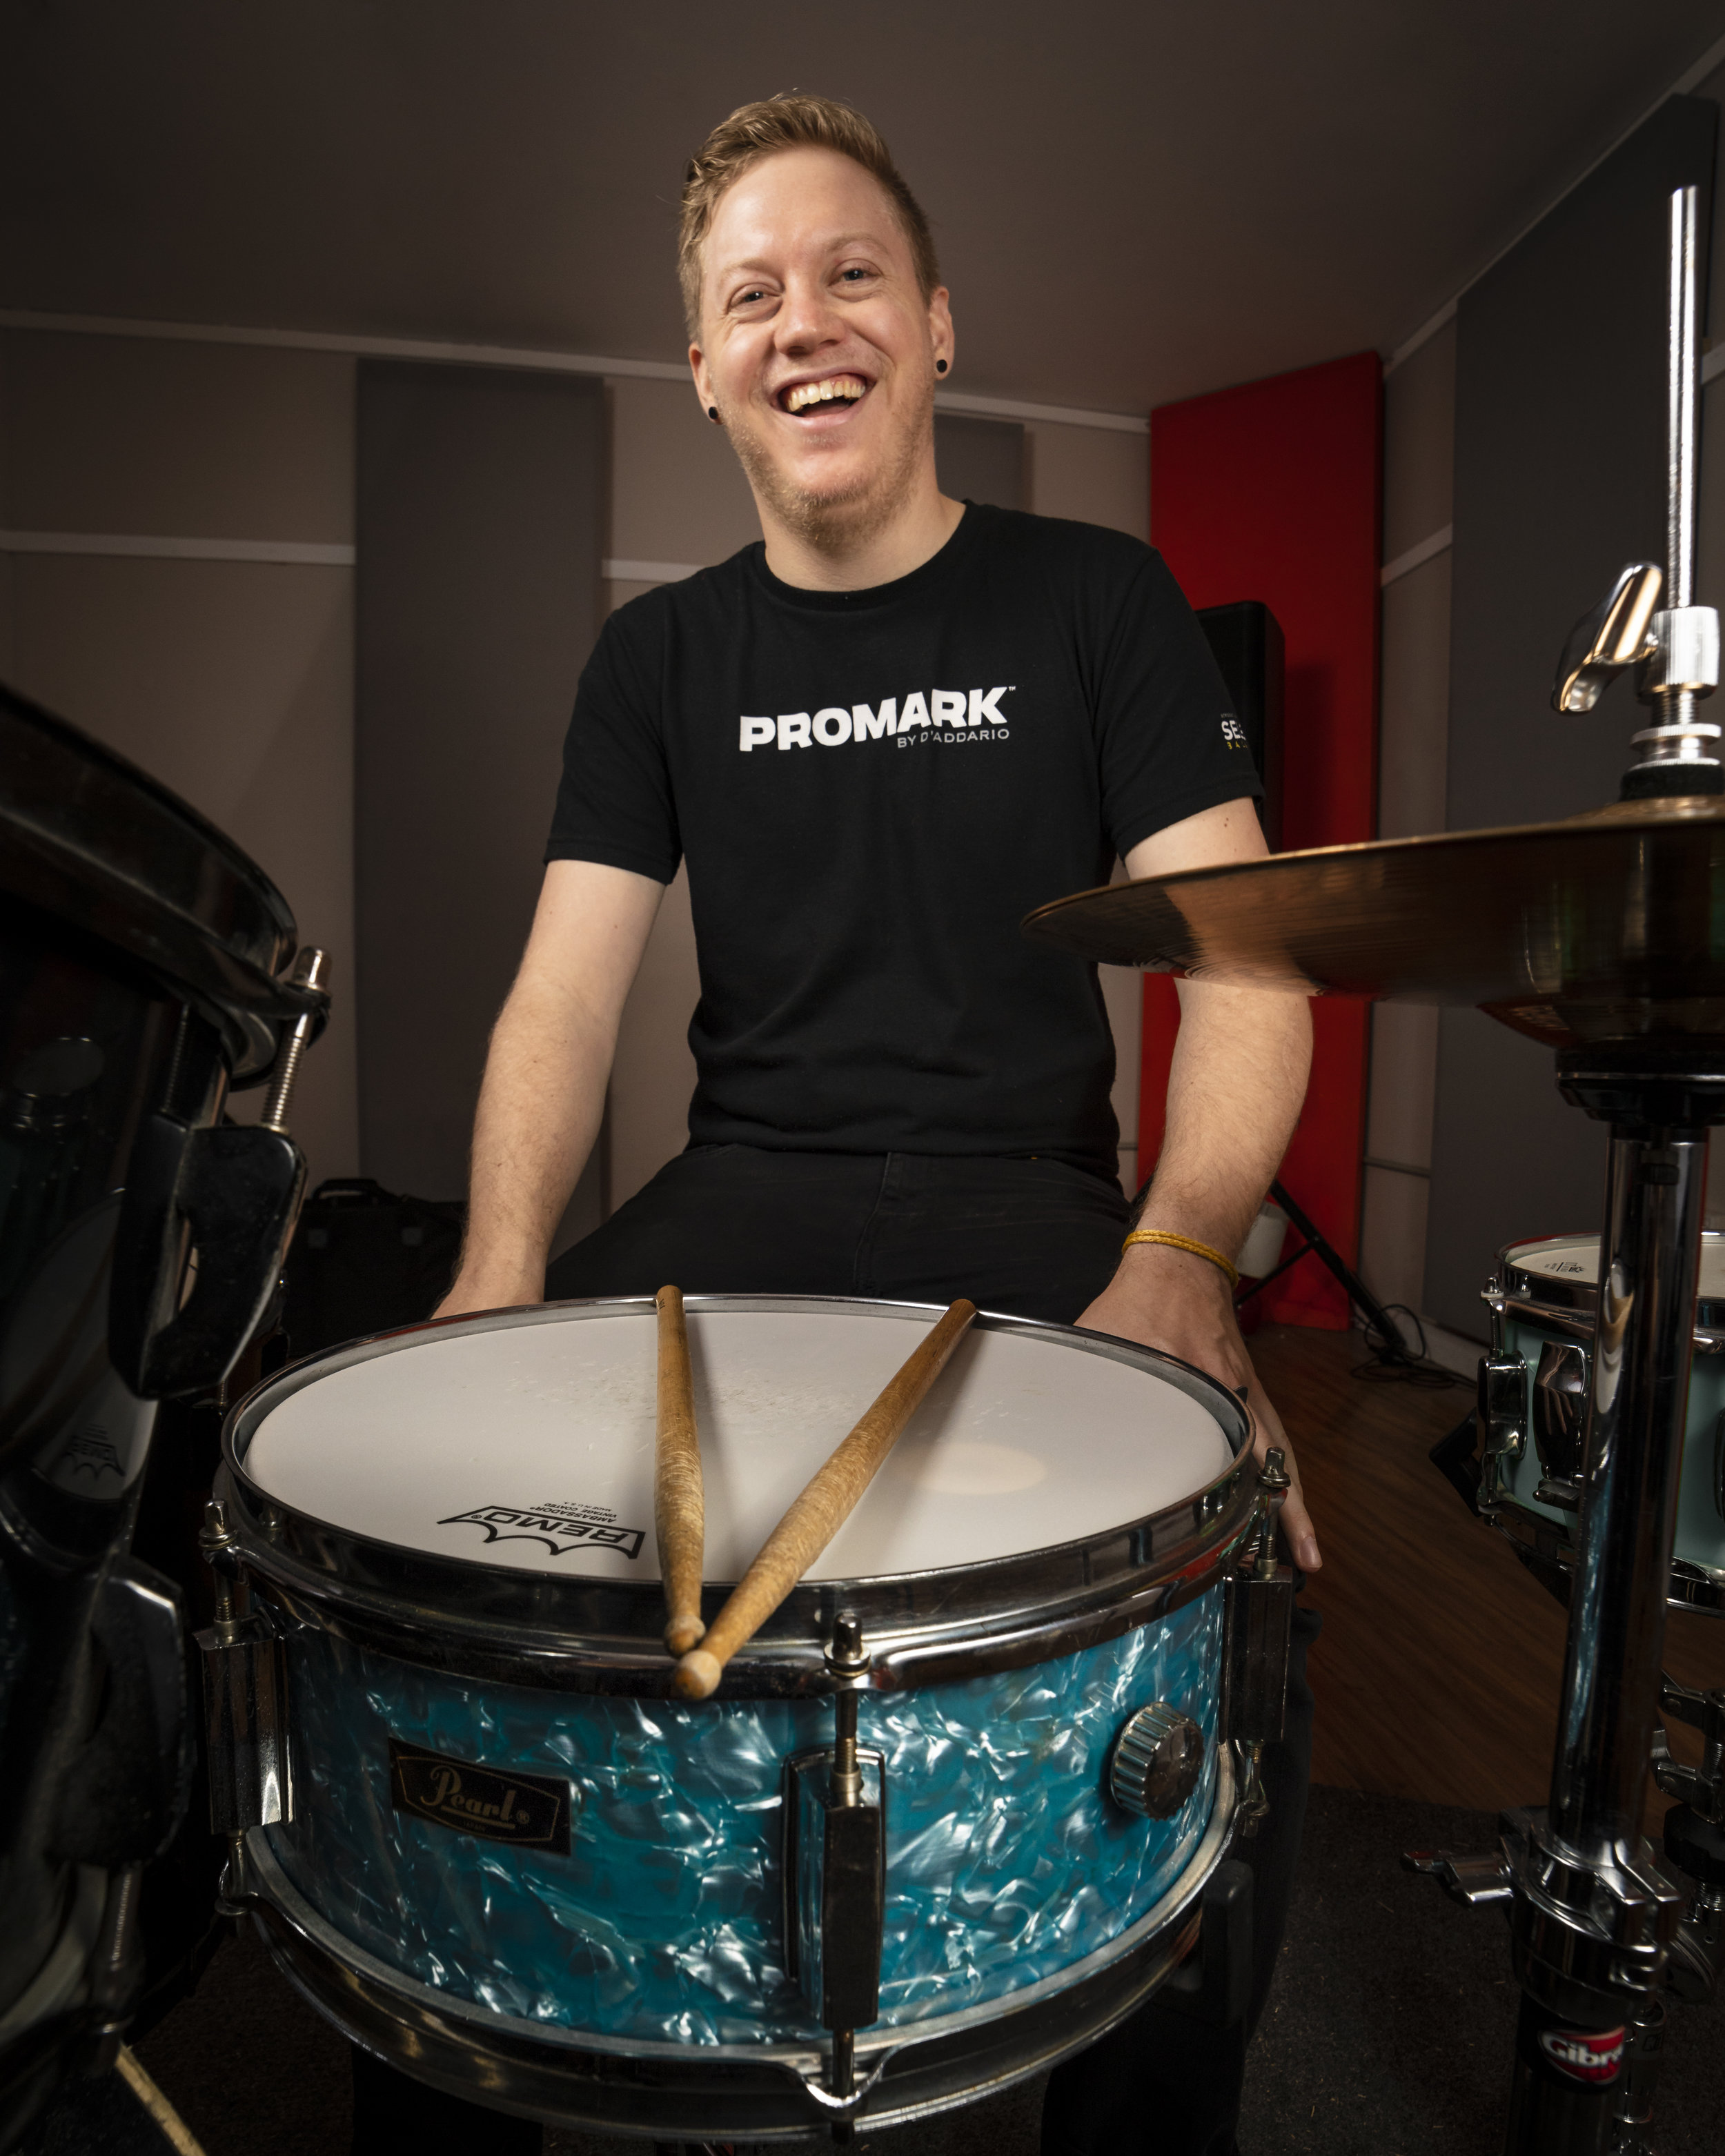 The Go Mad Story - Go Mad Drumming started in 2013 as a research study on ADHD and drumming. It has since evolved into a fully developed and tested drum course, available in 2 complete versions - ADHD & Typical.Learn more about Go Mad and our Tutors ➝